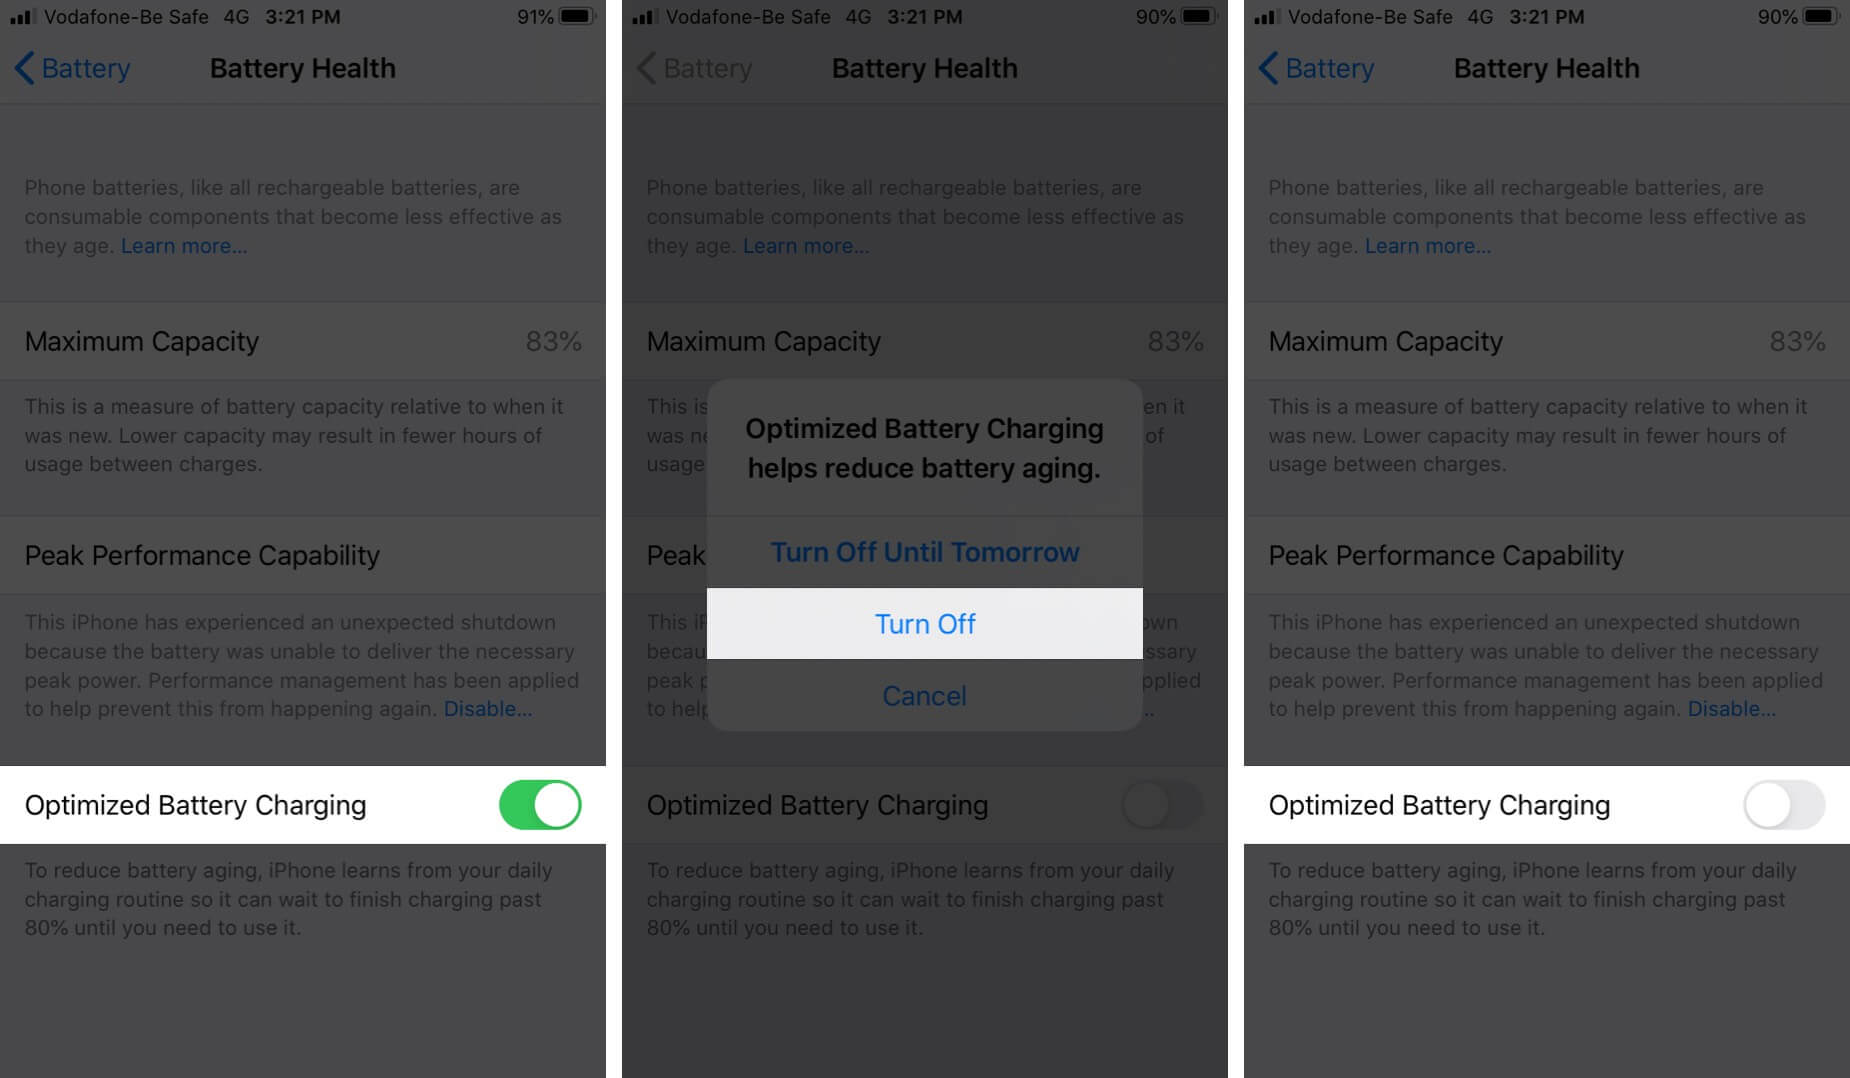 Turn Off Optimized Battery Charging on iPhone